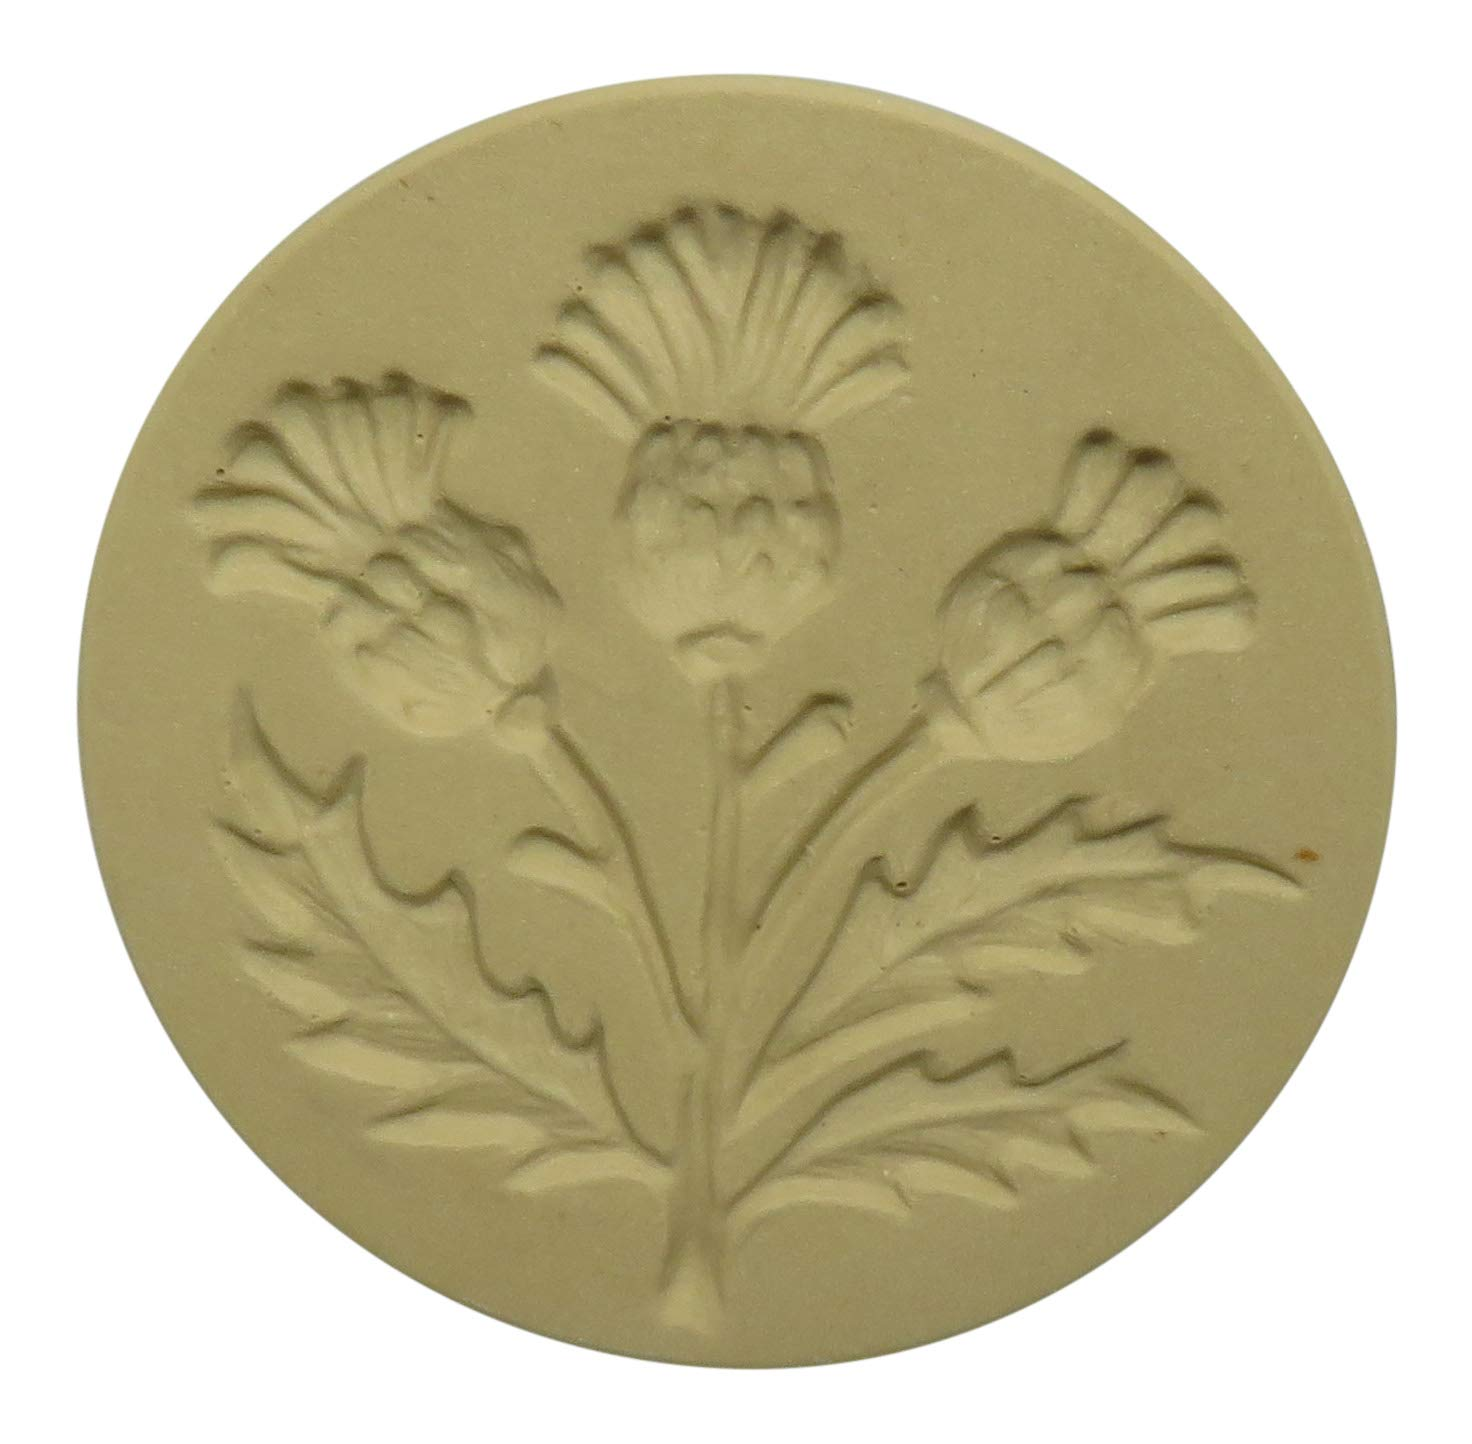 Brown Bag Thistle Cookie Stamp - British Isle Series by Brown Bag COMINHKR086058